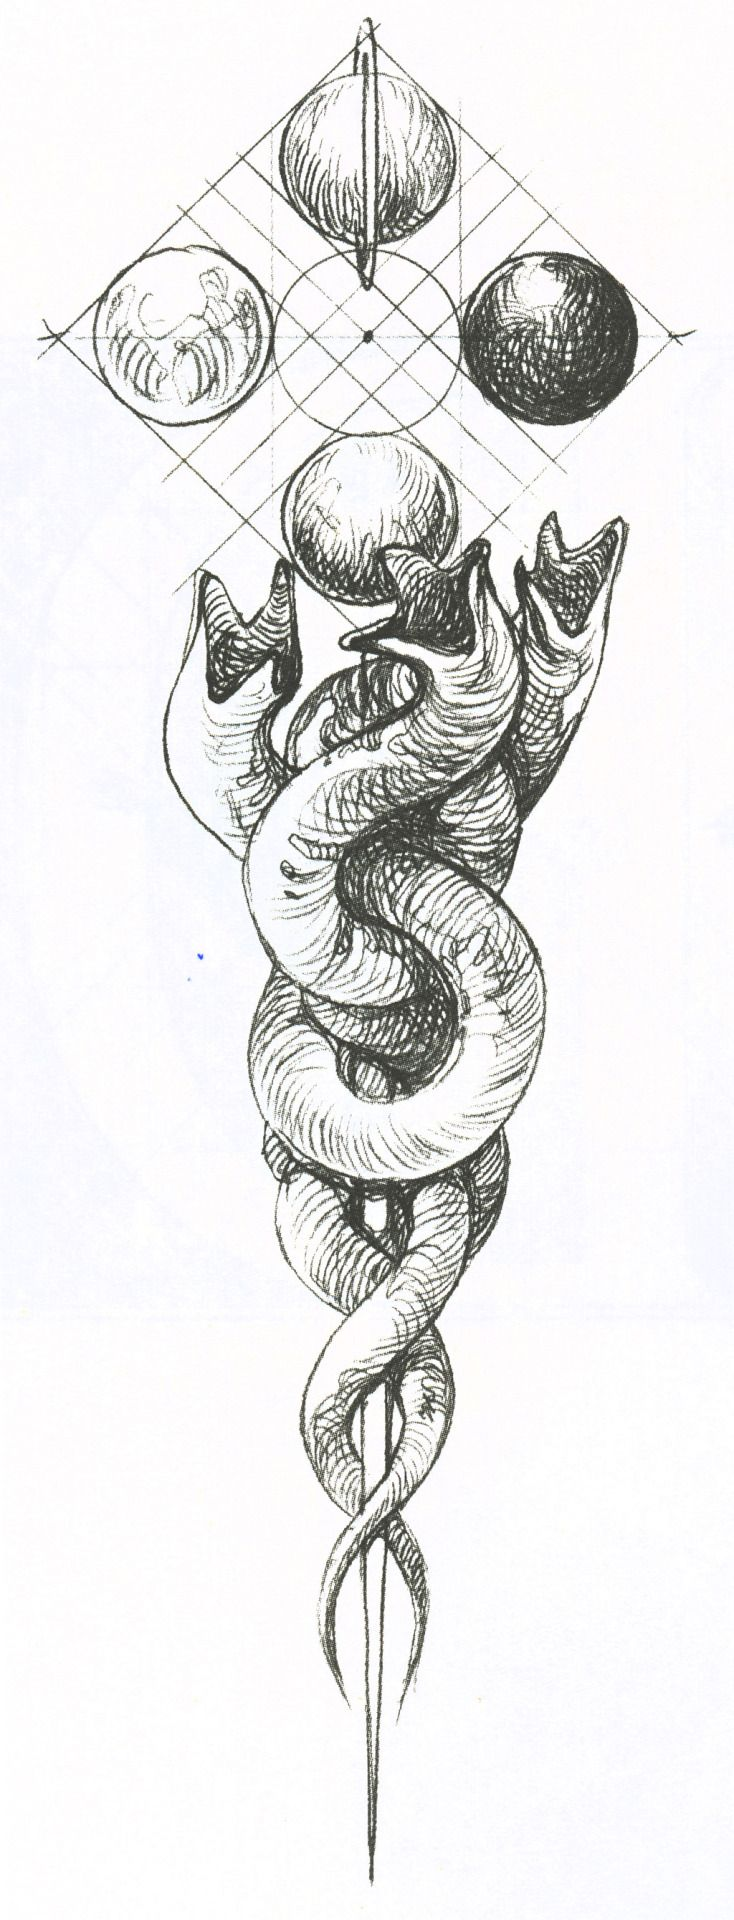 muaddibjihad: Wojtek Siudmak's symbol of the worm, from the Polish edition of Chapterhouse: Dune. Clockwise from the top the planets are Kaitain, Giedi Prime, Caladan, and Arrakis. (more images from this book coming soon)